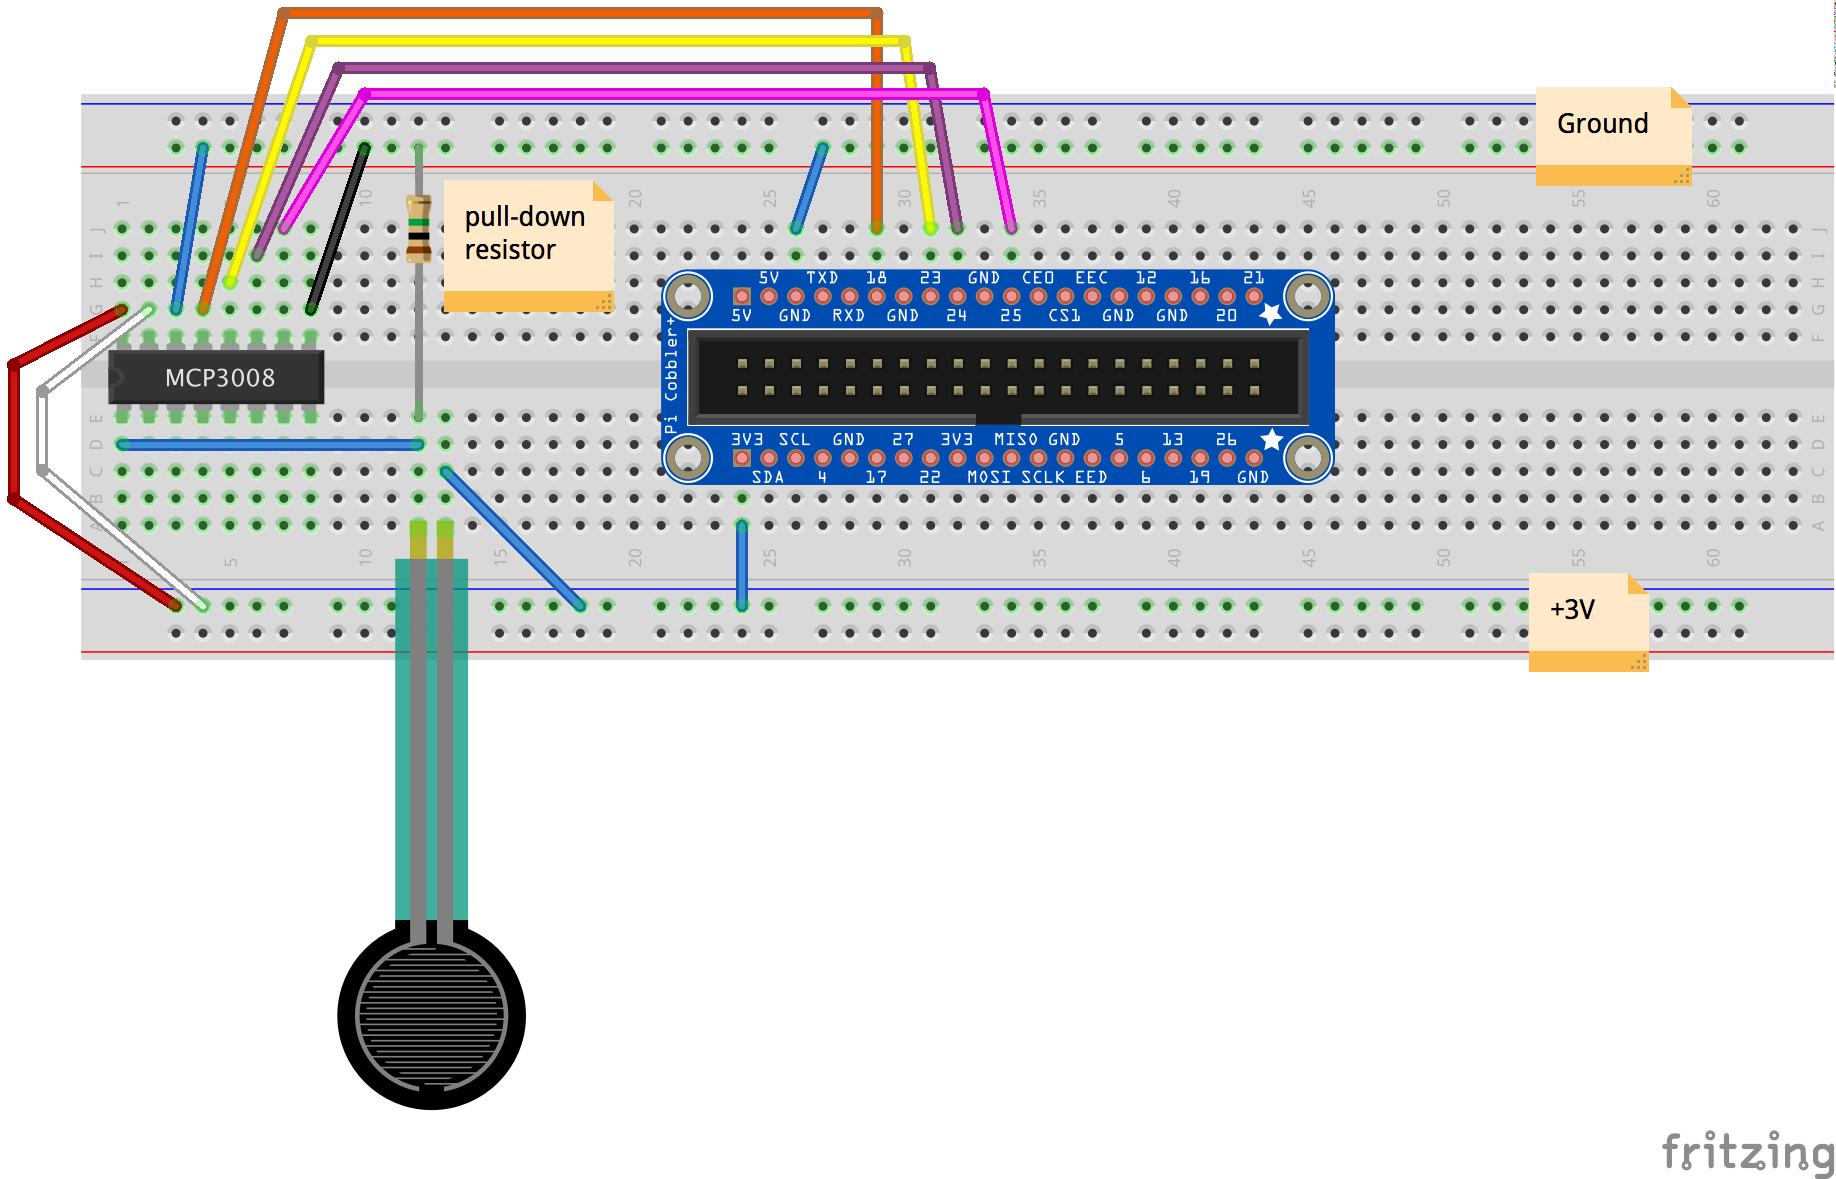 Fsr Wiring Diagram 18 Images Diagrams Fender Telecaster 2015 01 07 Rasp Pi Breadboard Using A Force Sensitive Resistor With Raspberry